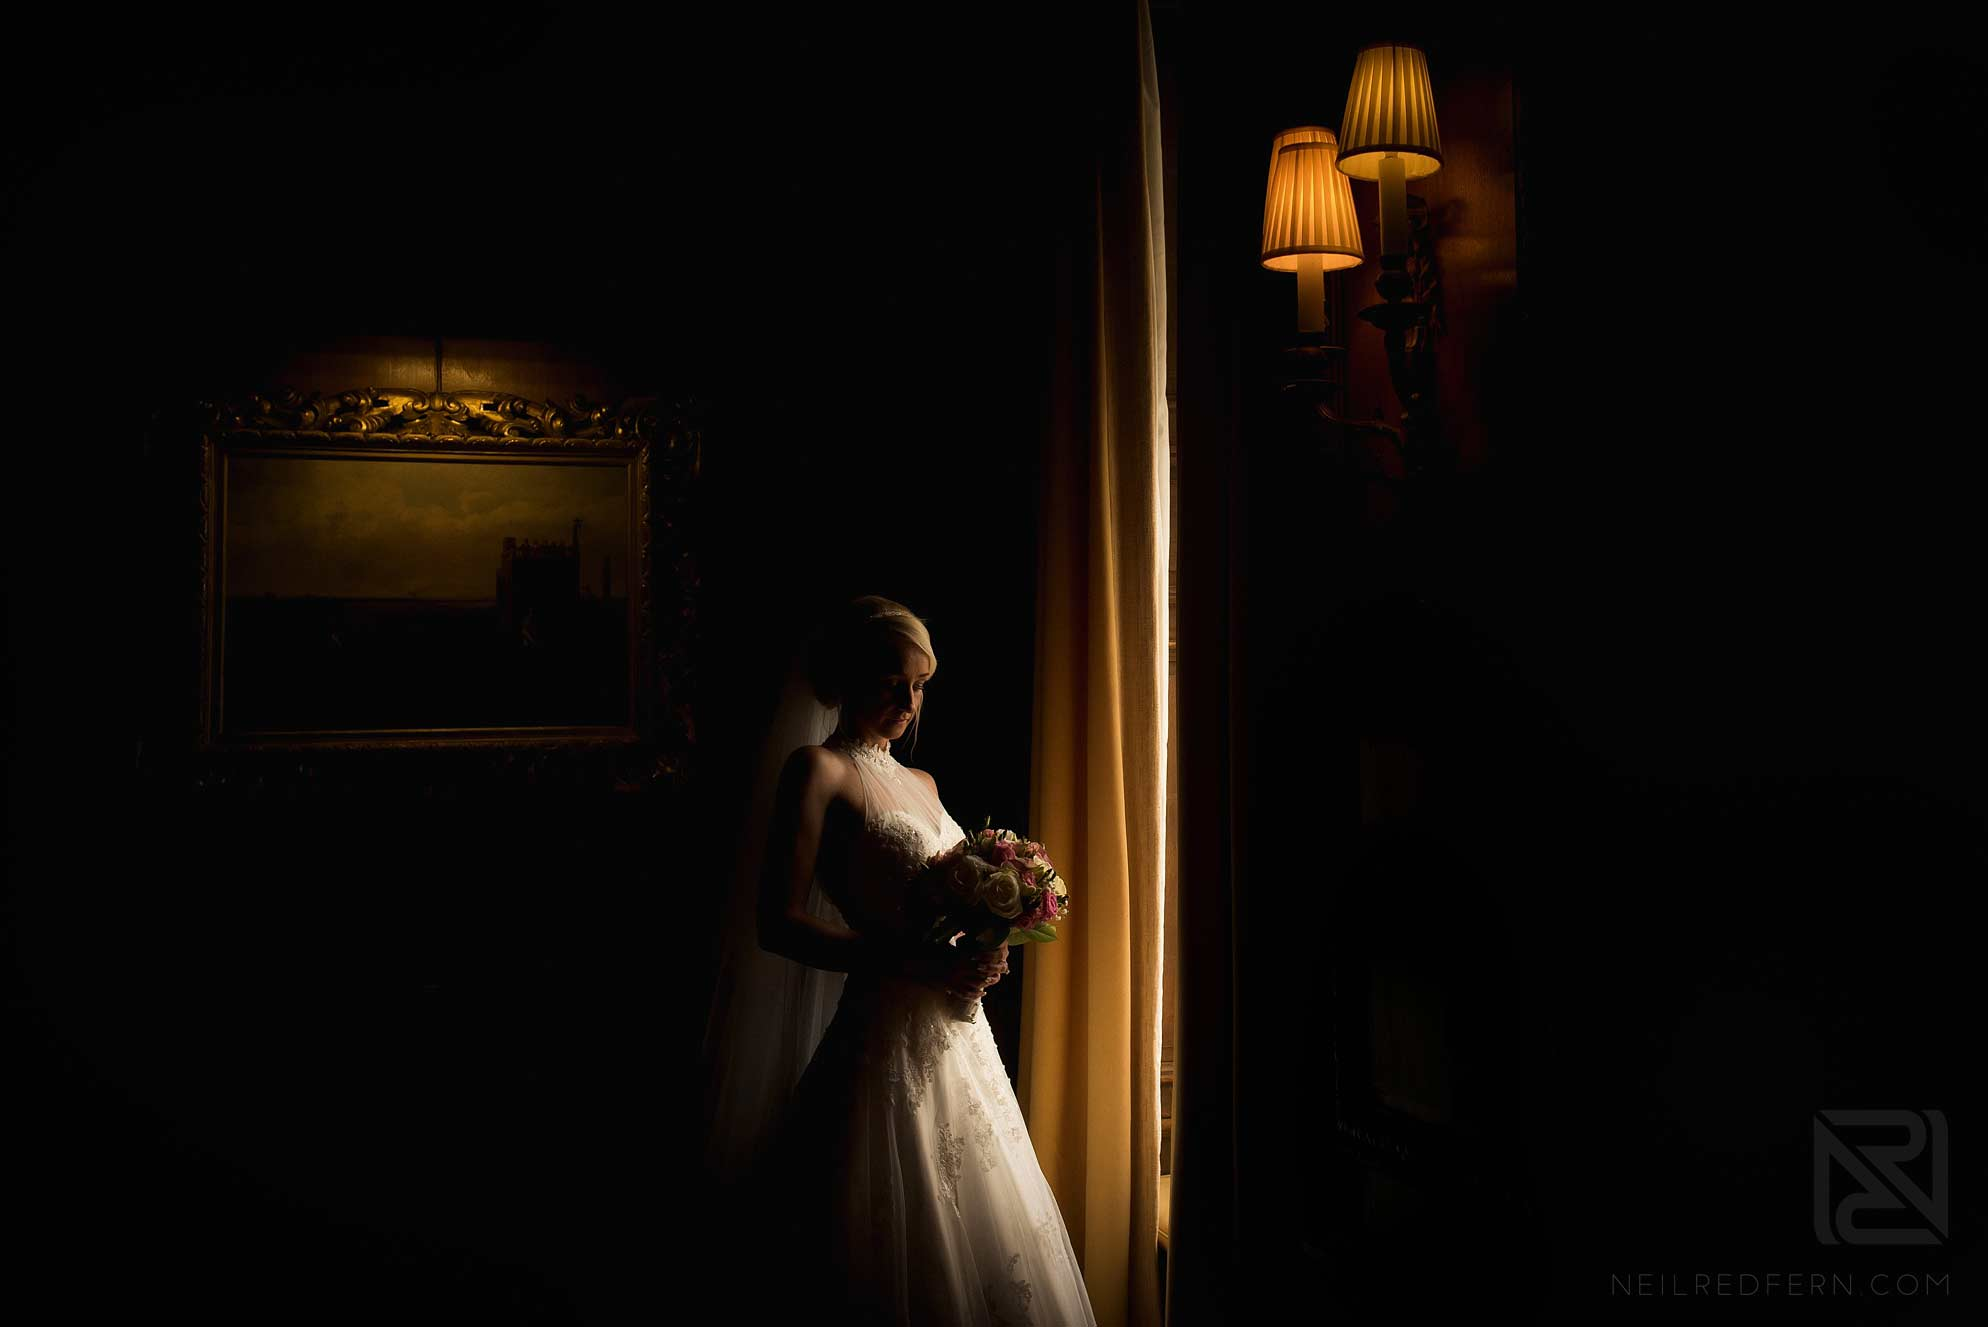 beautiful window light portrait of bride